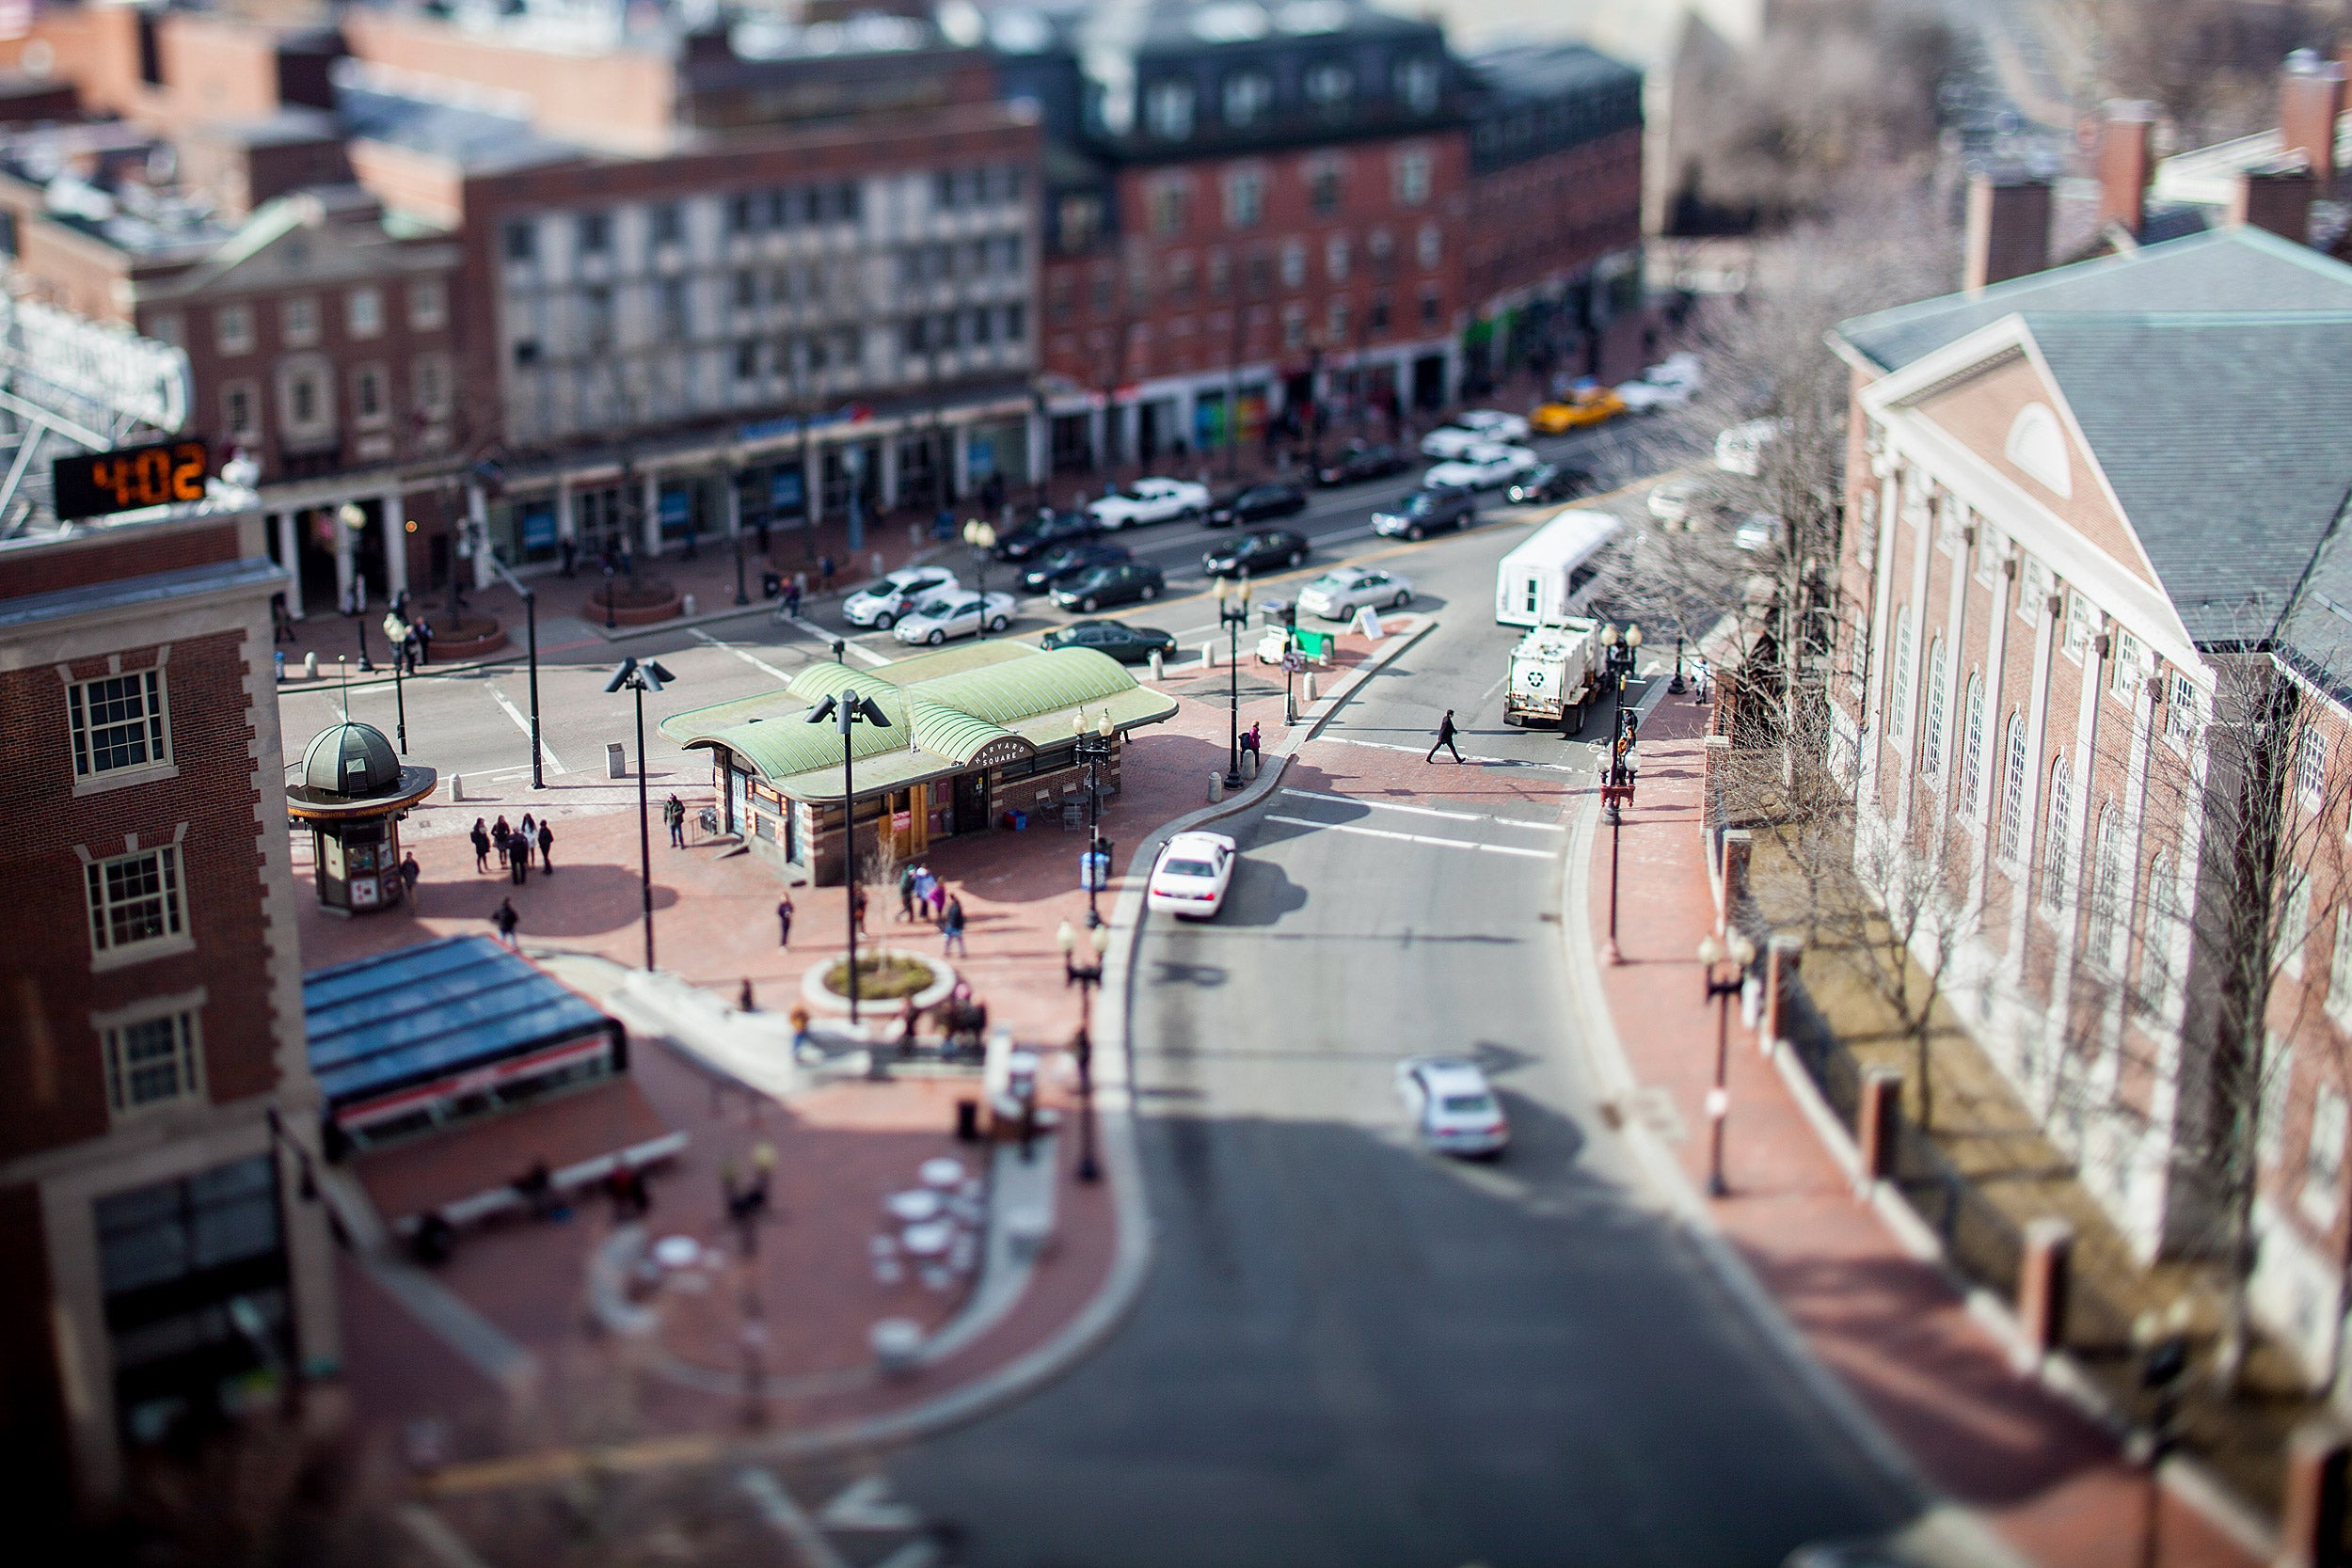 Harvard square as seen from above